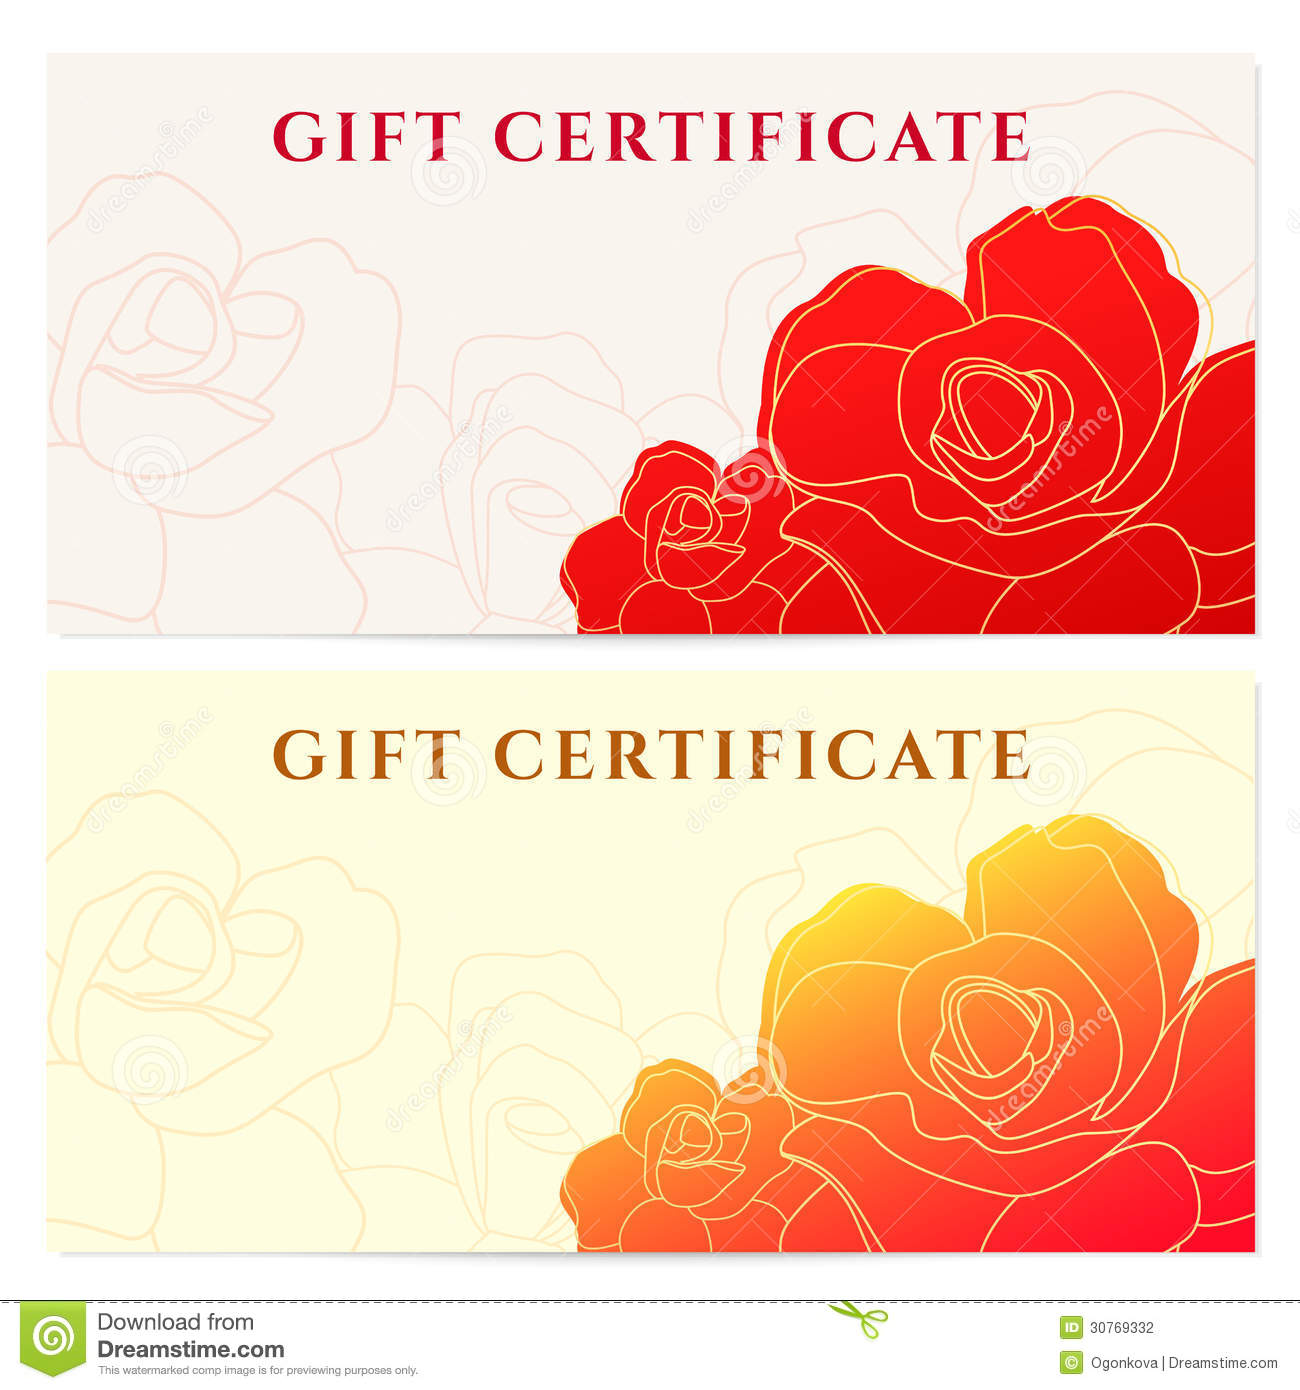 gift certificate voucher template flower pattern stock vector image 30769332. Black Bedroom Furniture Sets. Home Design Ideas